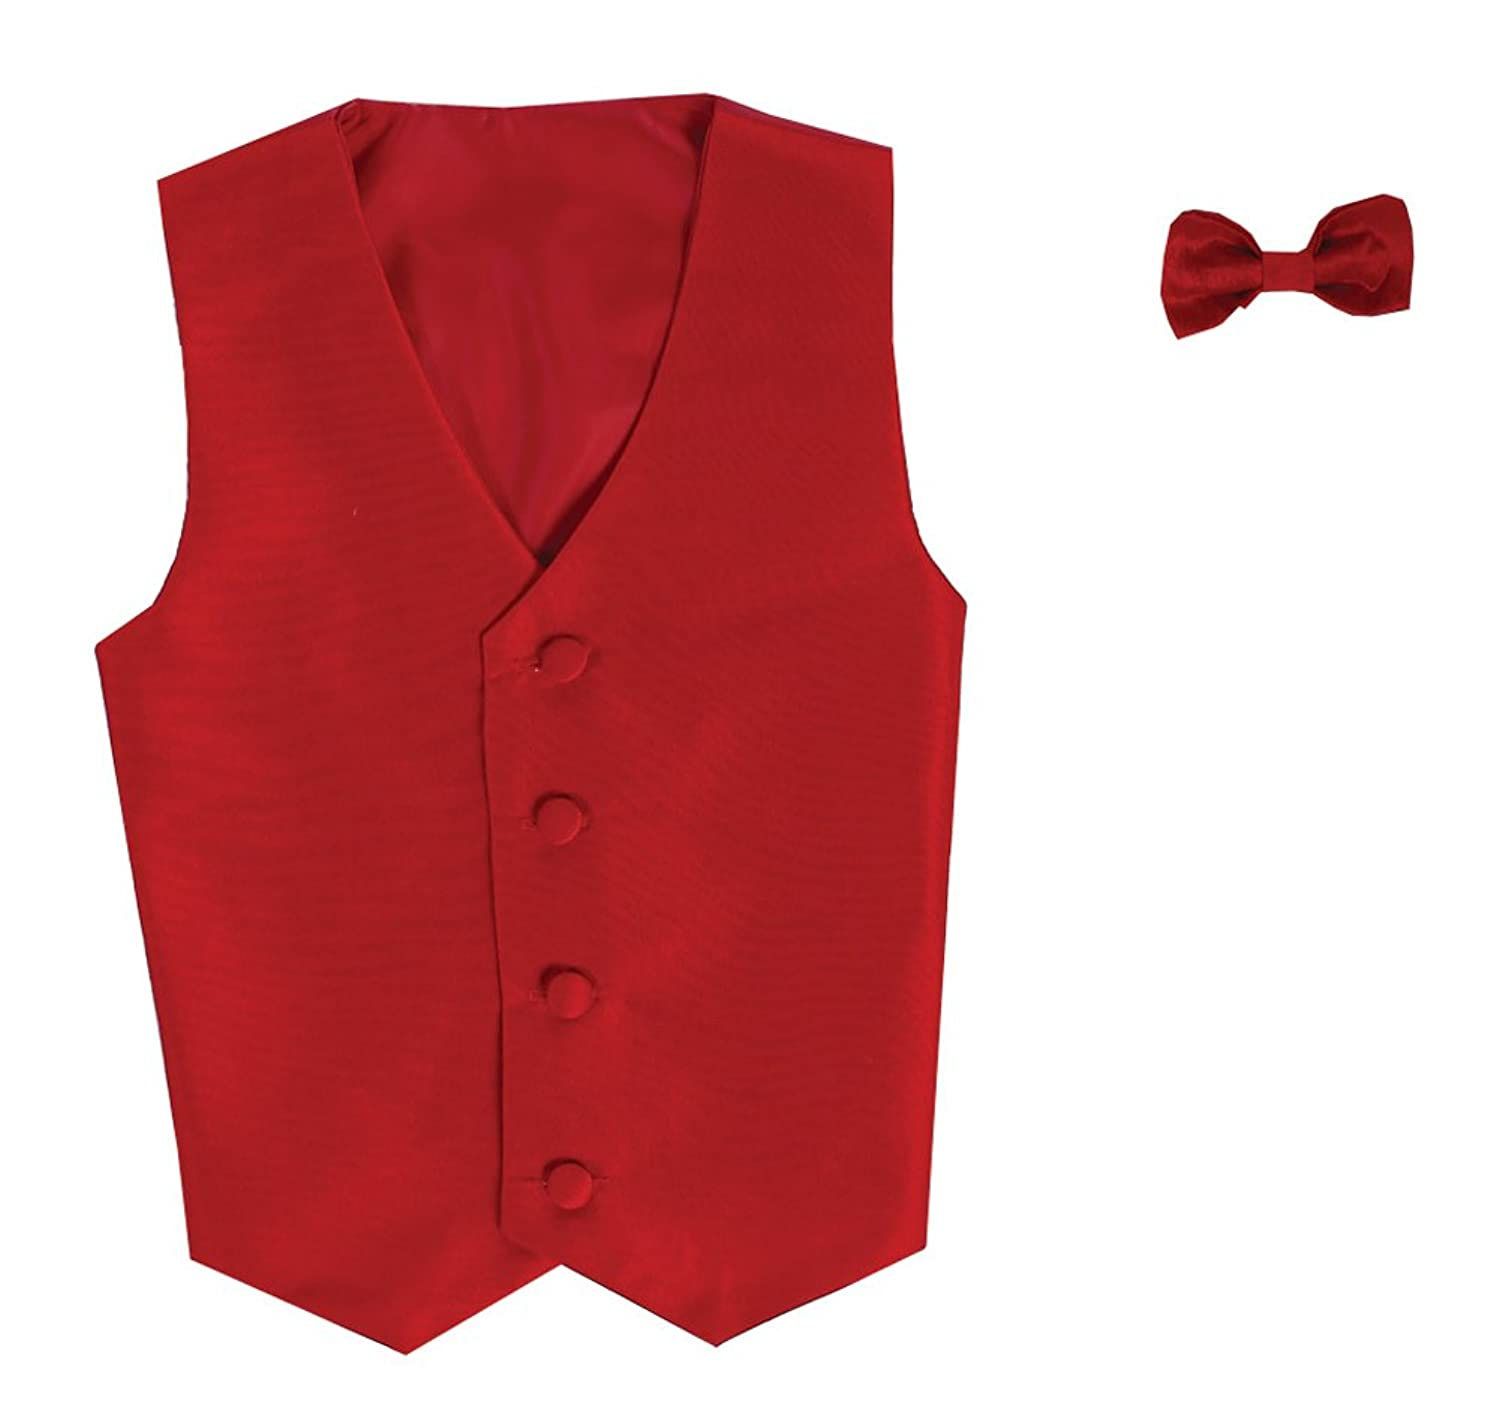 Vest and Clip On Bowtie set - Multiple Colors - Baby Infant Toddler Boys Tween Sizes free shipping microwave oven parts glass plate support oven bracket roller plastic ring glass microwave tray bracket